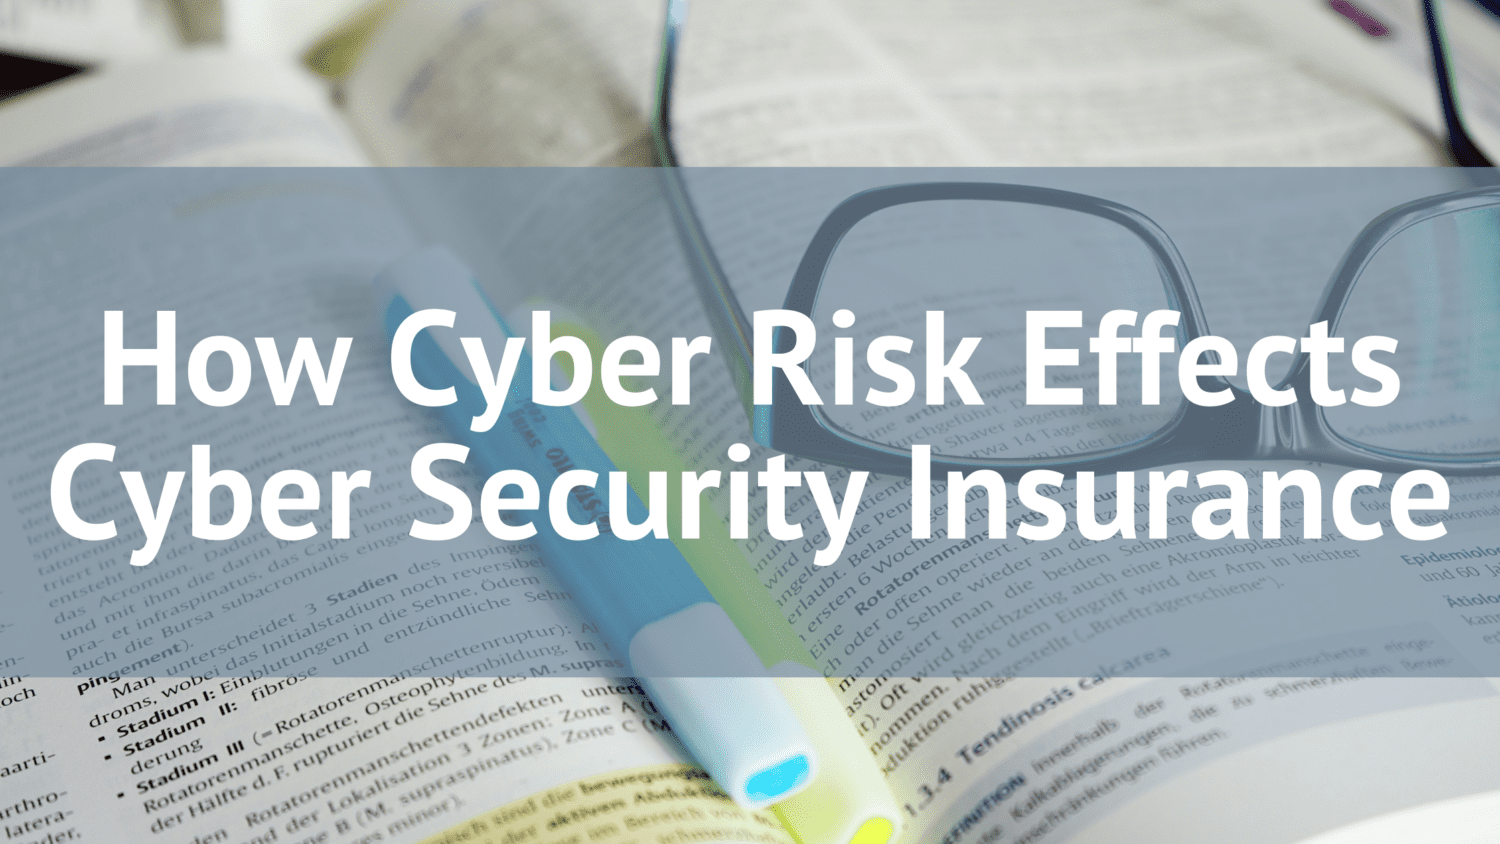 How Cyber Risk Effects Cyber Security Insurance